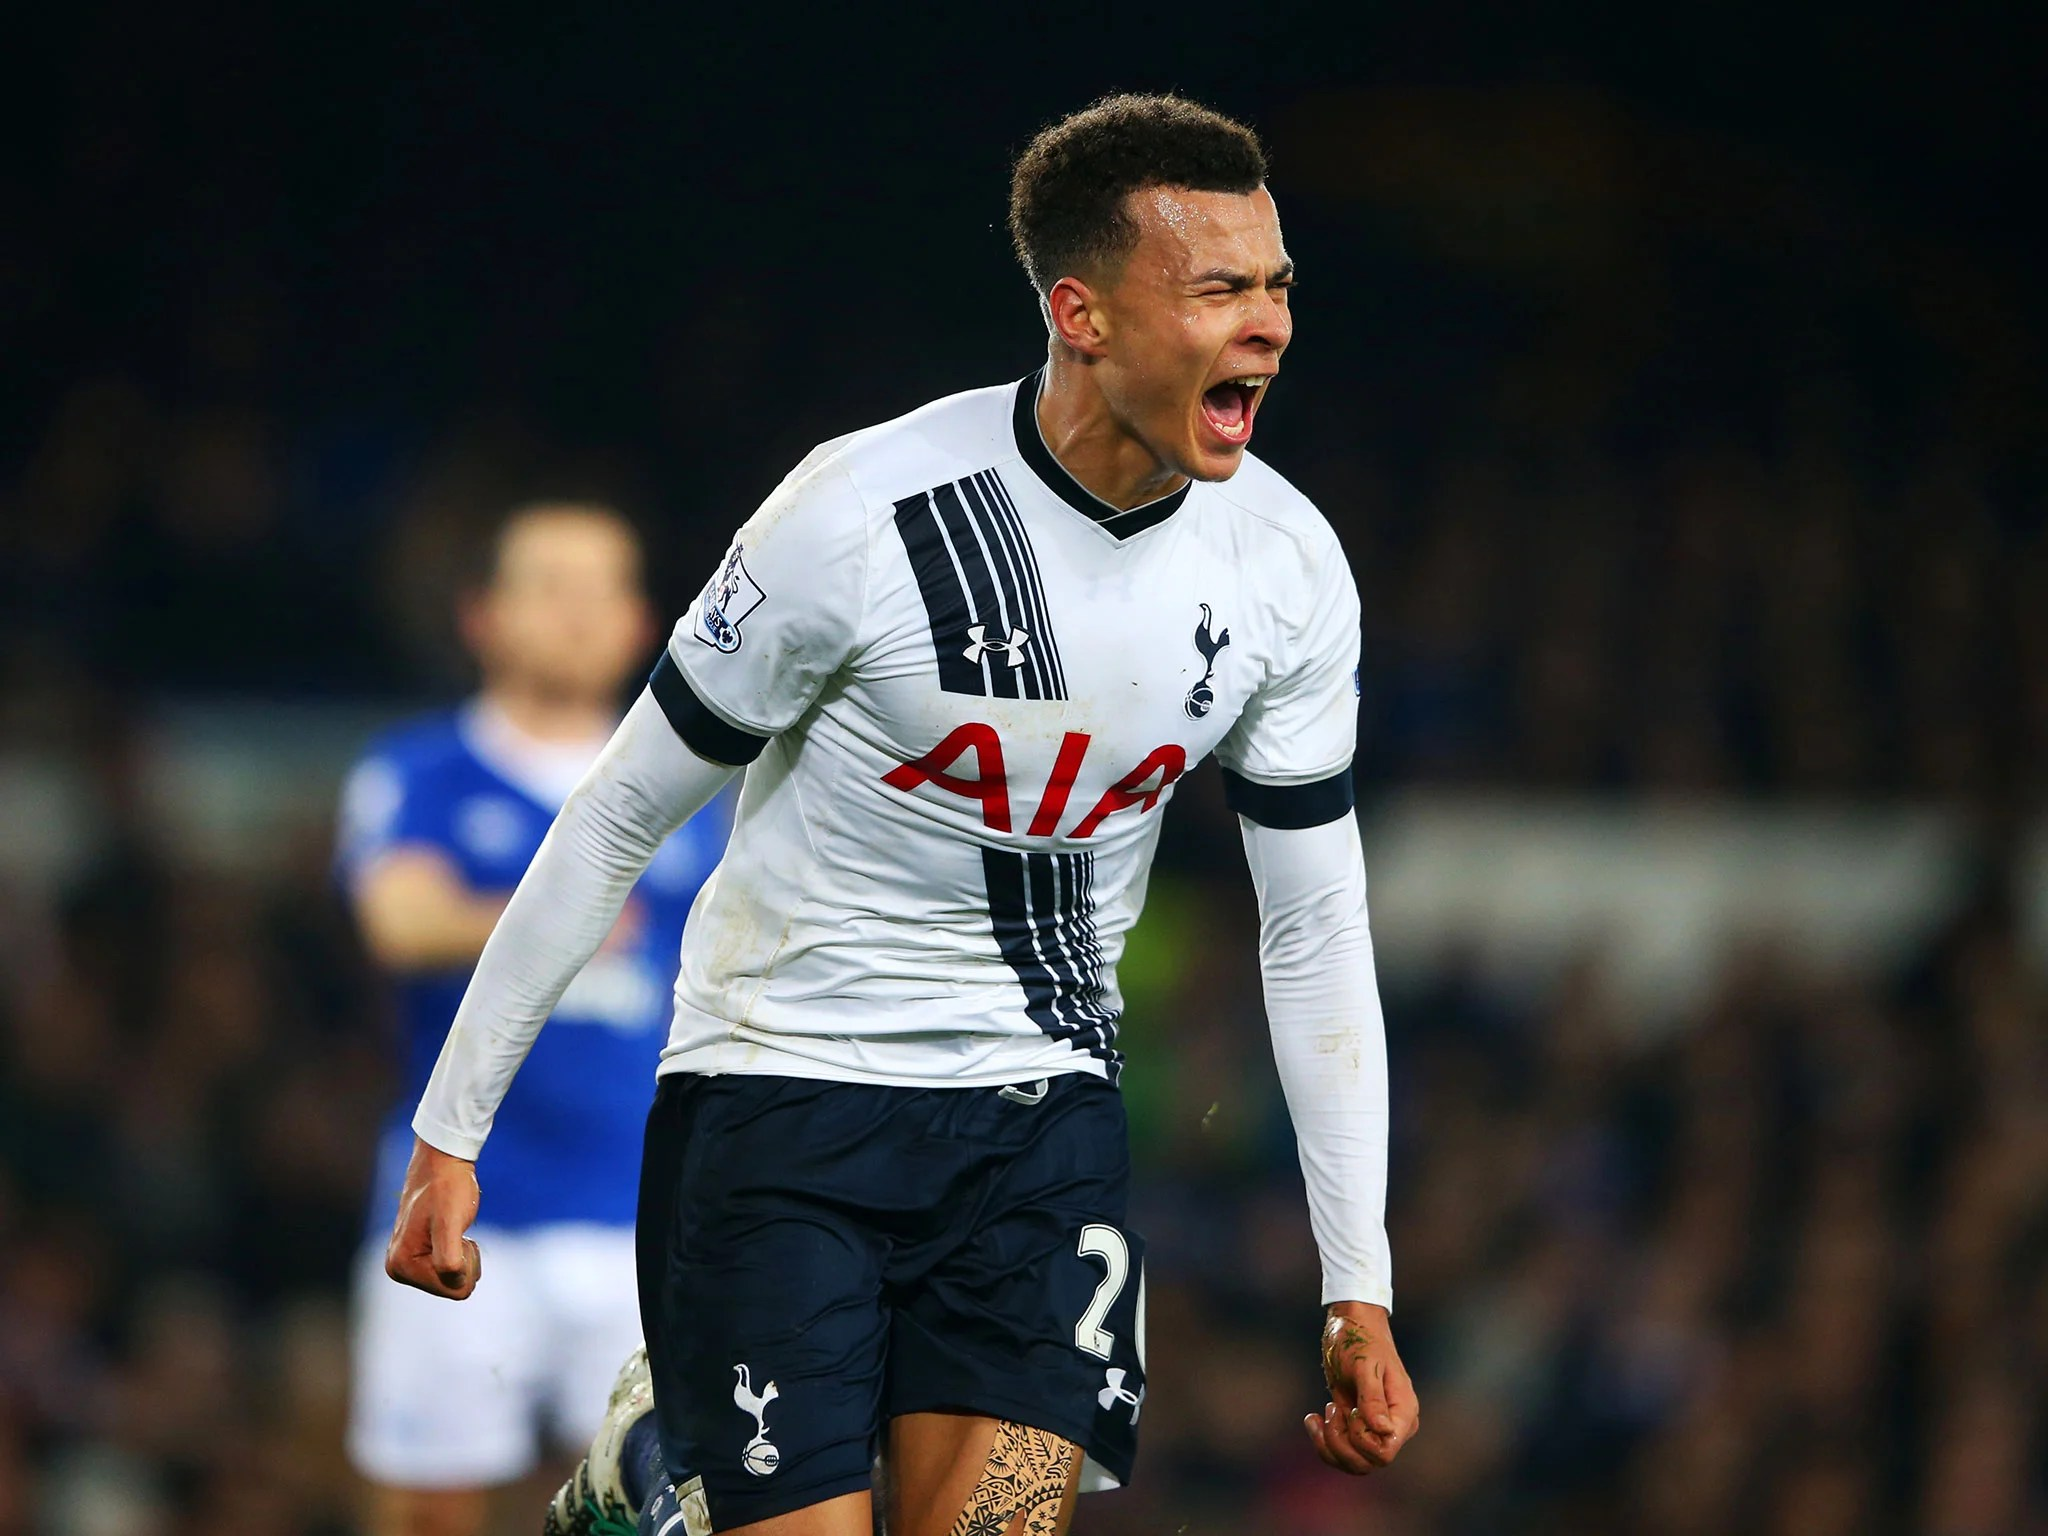 Dele Alli goal: Liverpool fans vent fury following